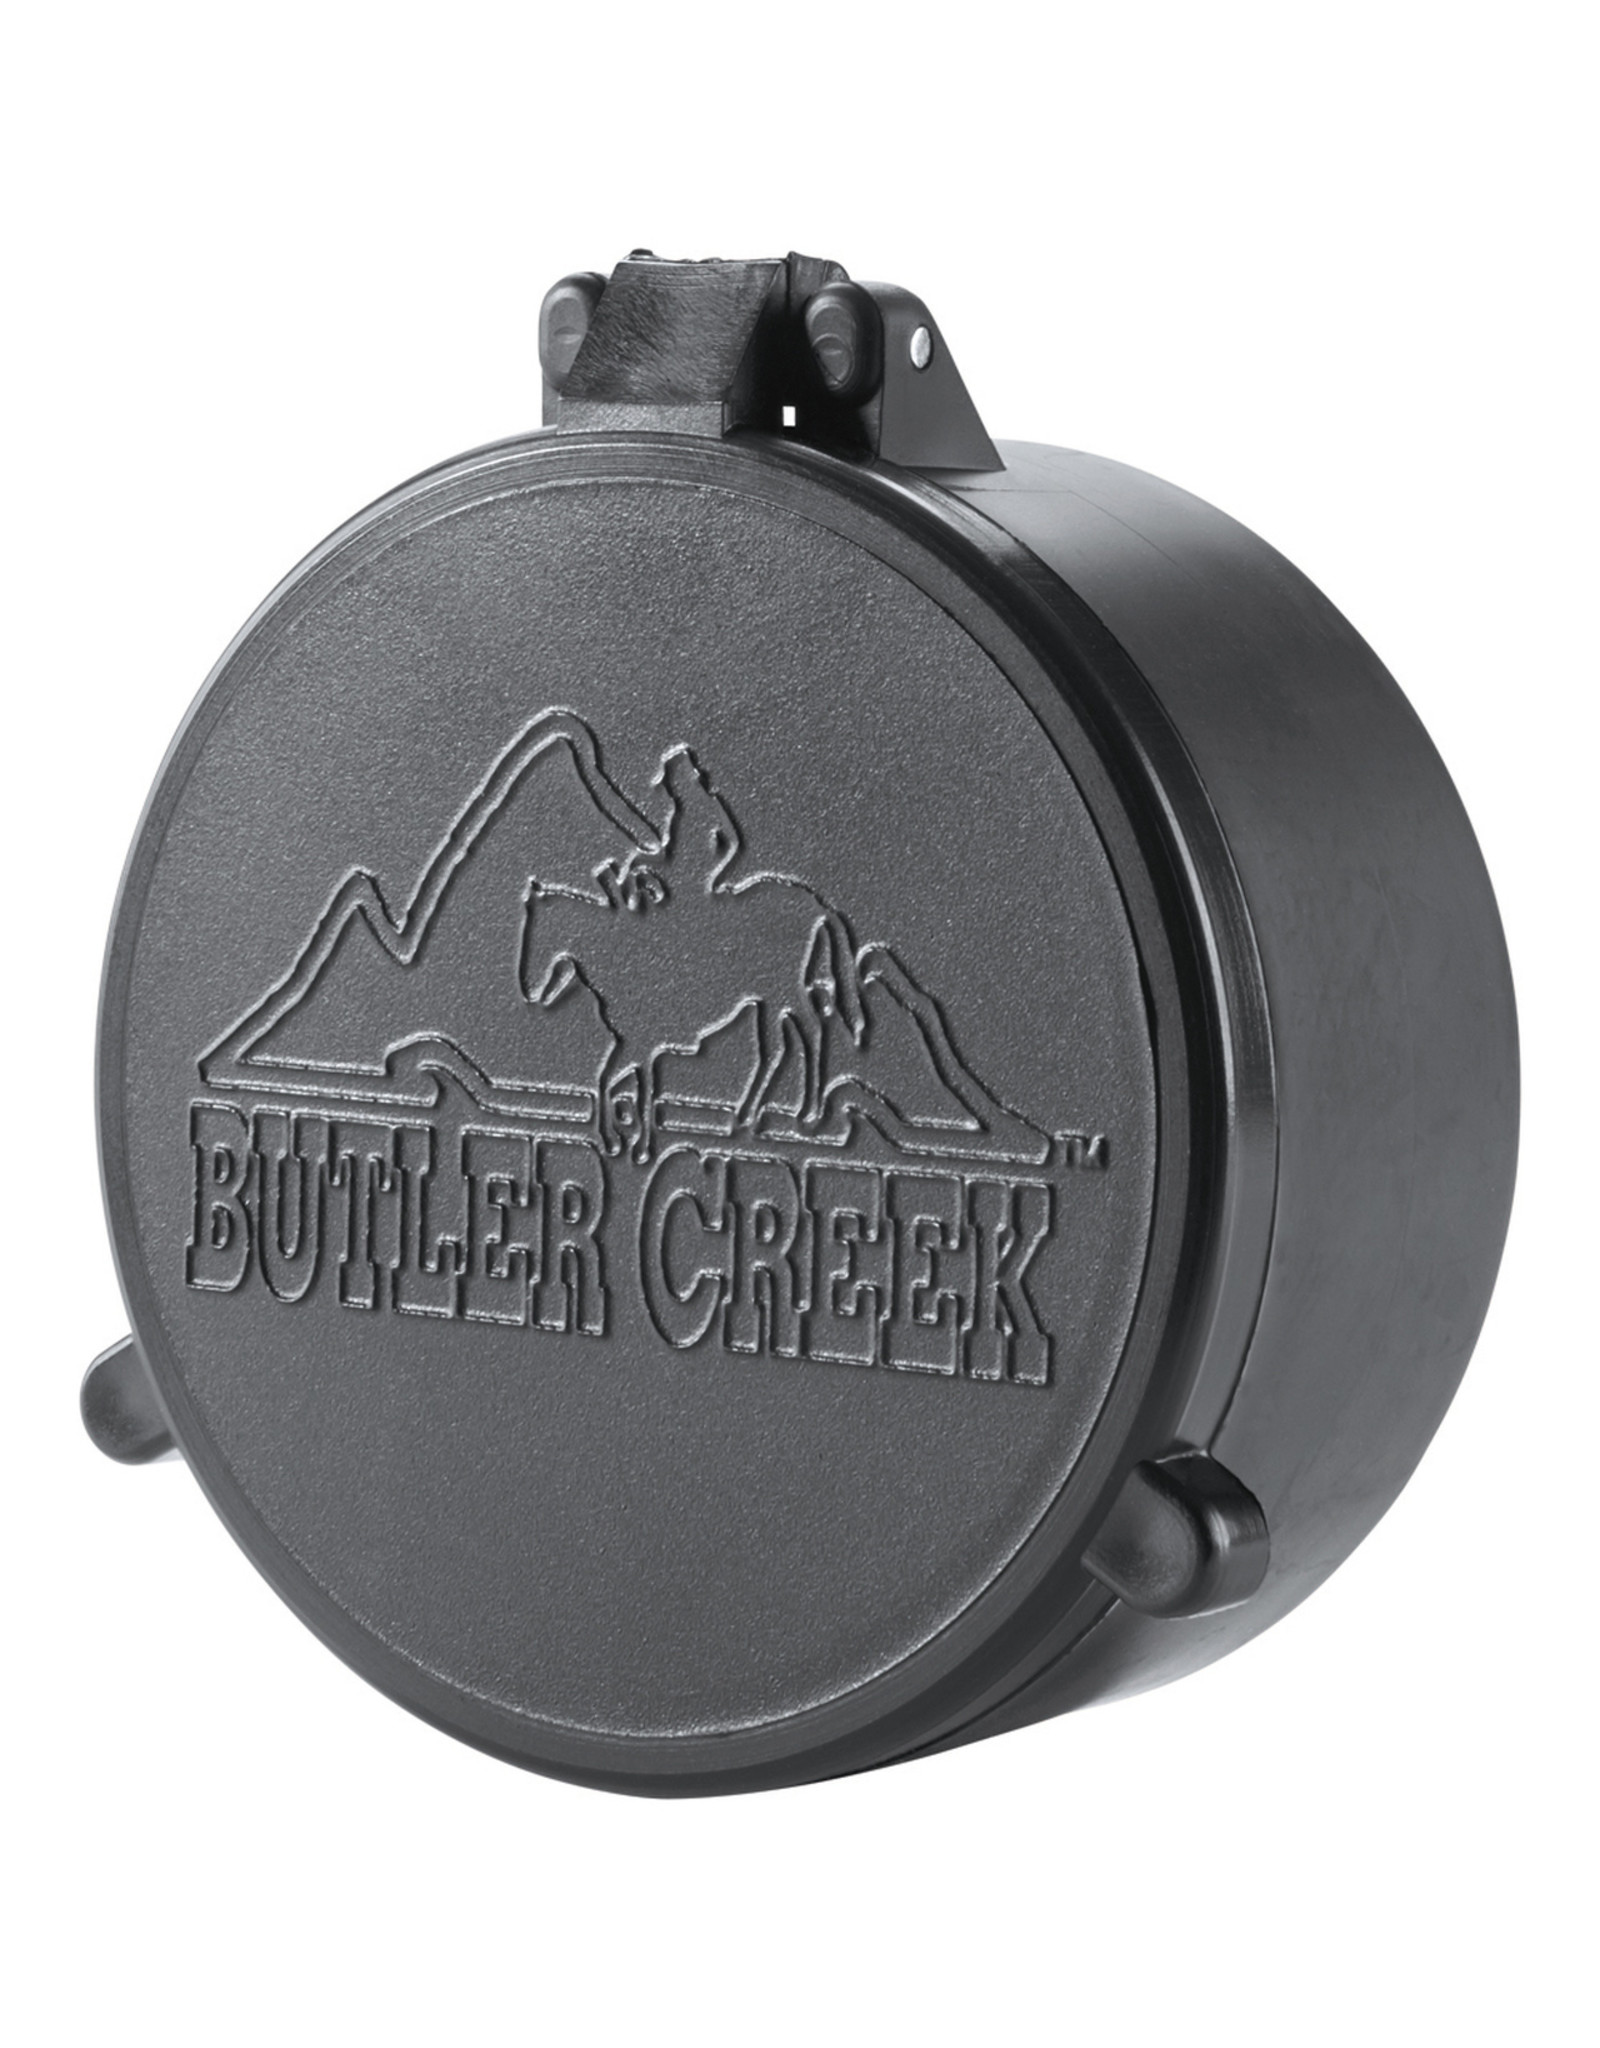 Butler Creek Butler Creek 28 OBJ Scope Cover